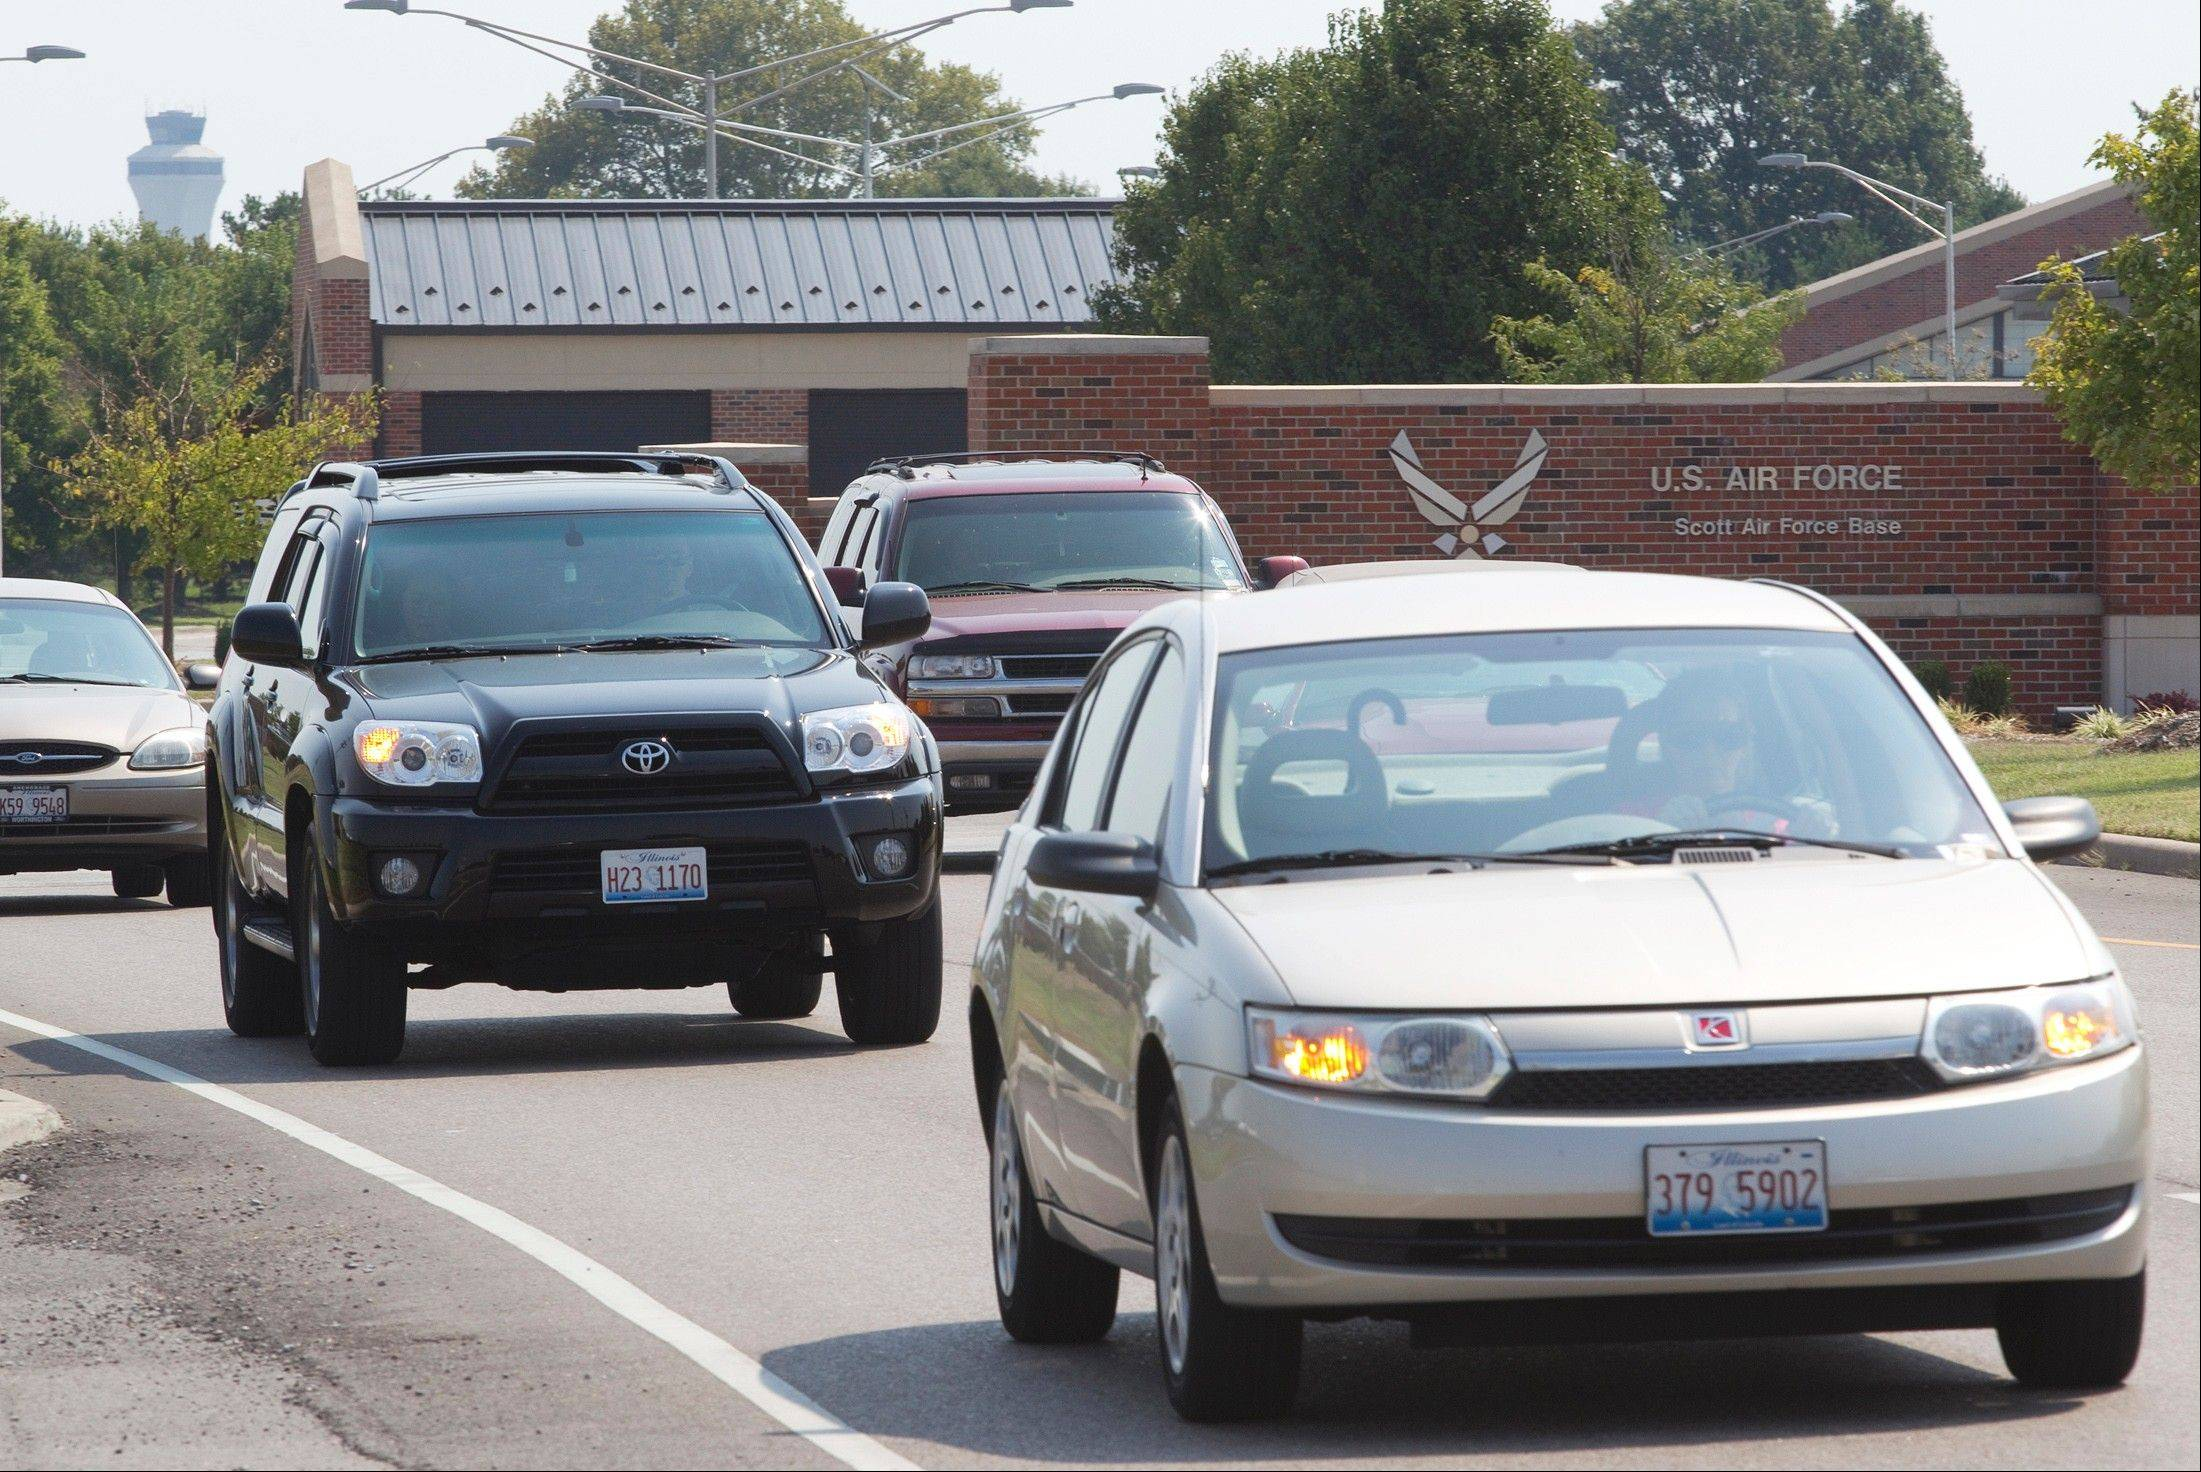 Associated Press Traffic leaves through the main gate at Scott Air Force Base in Mascoutah, Ill., Wednesday after a suspicious package was found on the base. Three people from the base in southwestern Illinois were hospitalized, and about 100 were evacuated.